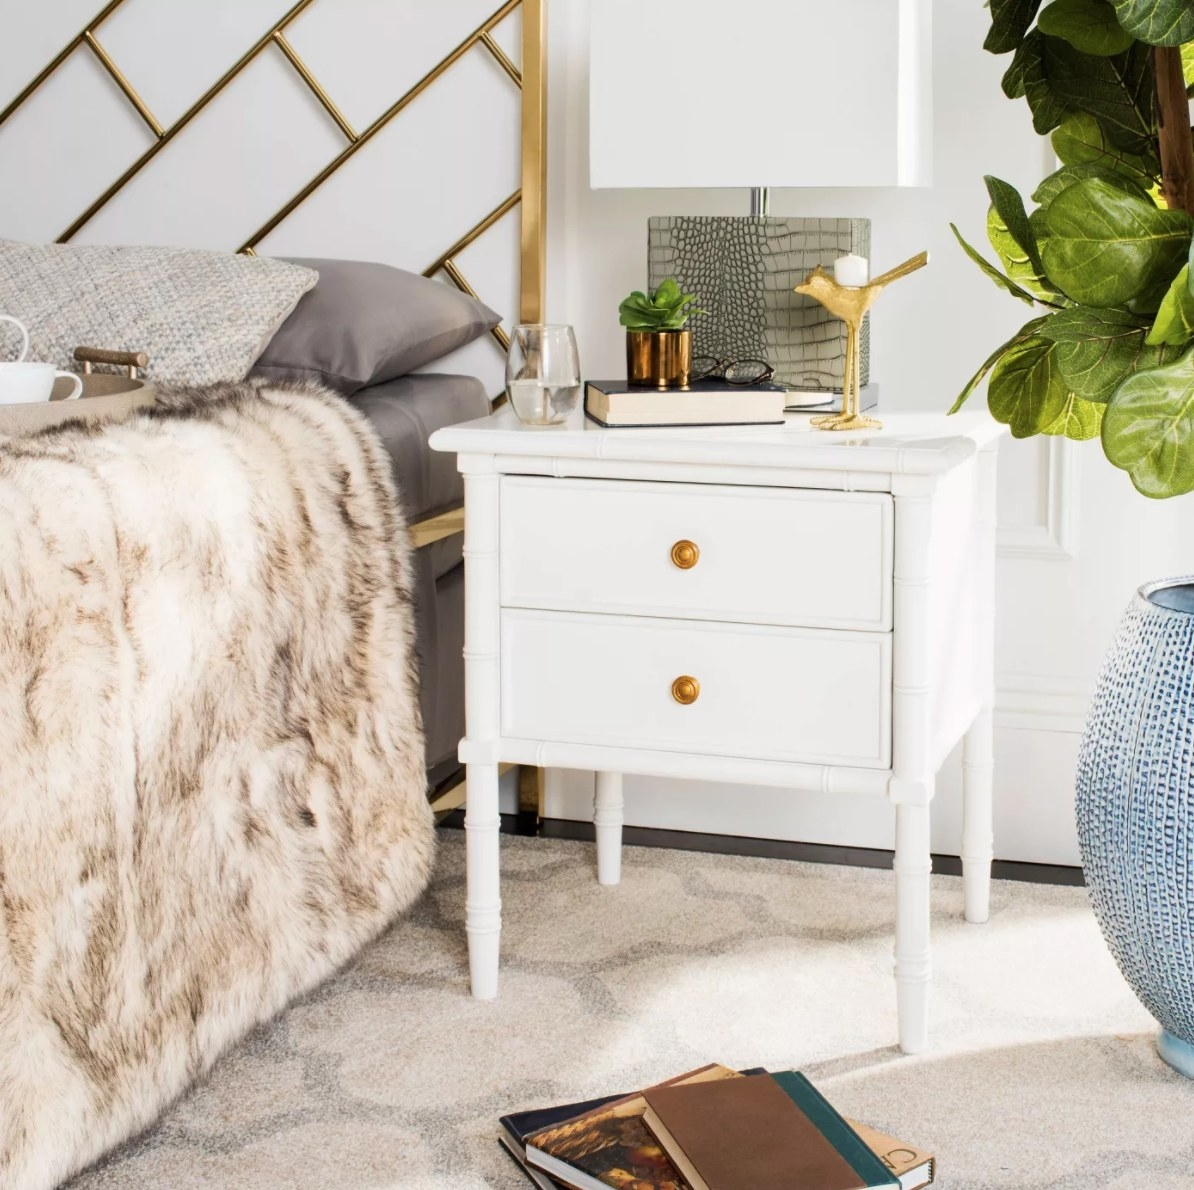 The two drawer nightstand in white holding a glass of water, plant, book, and lamp